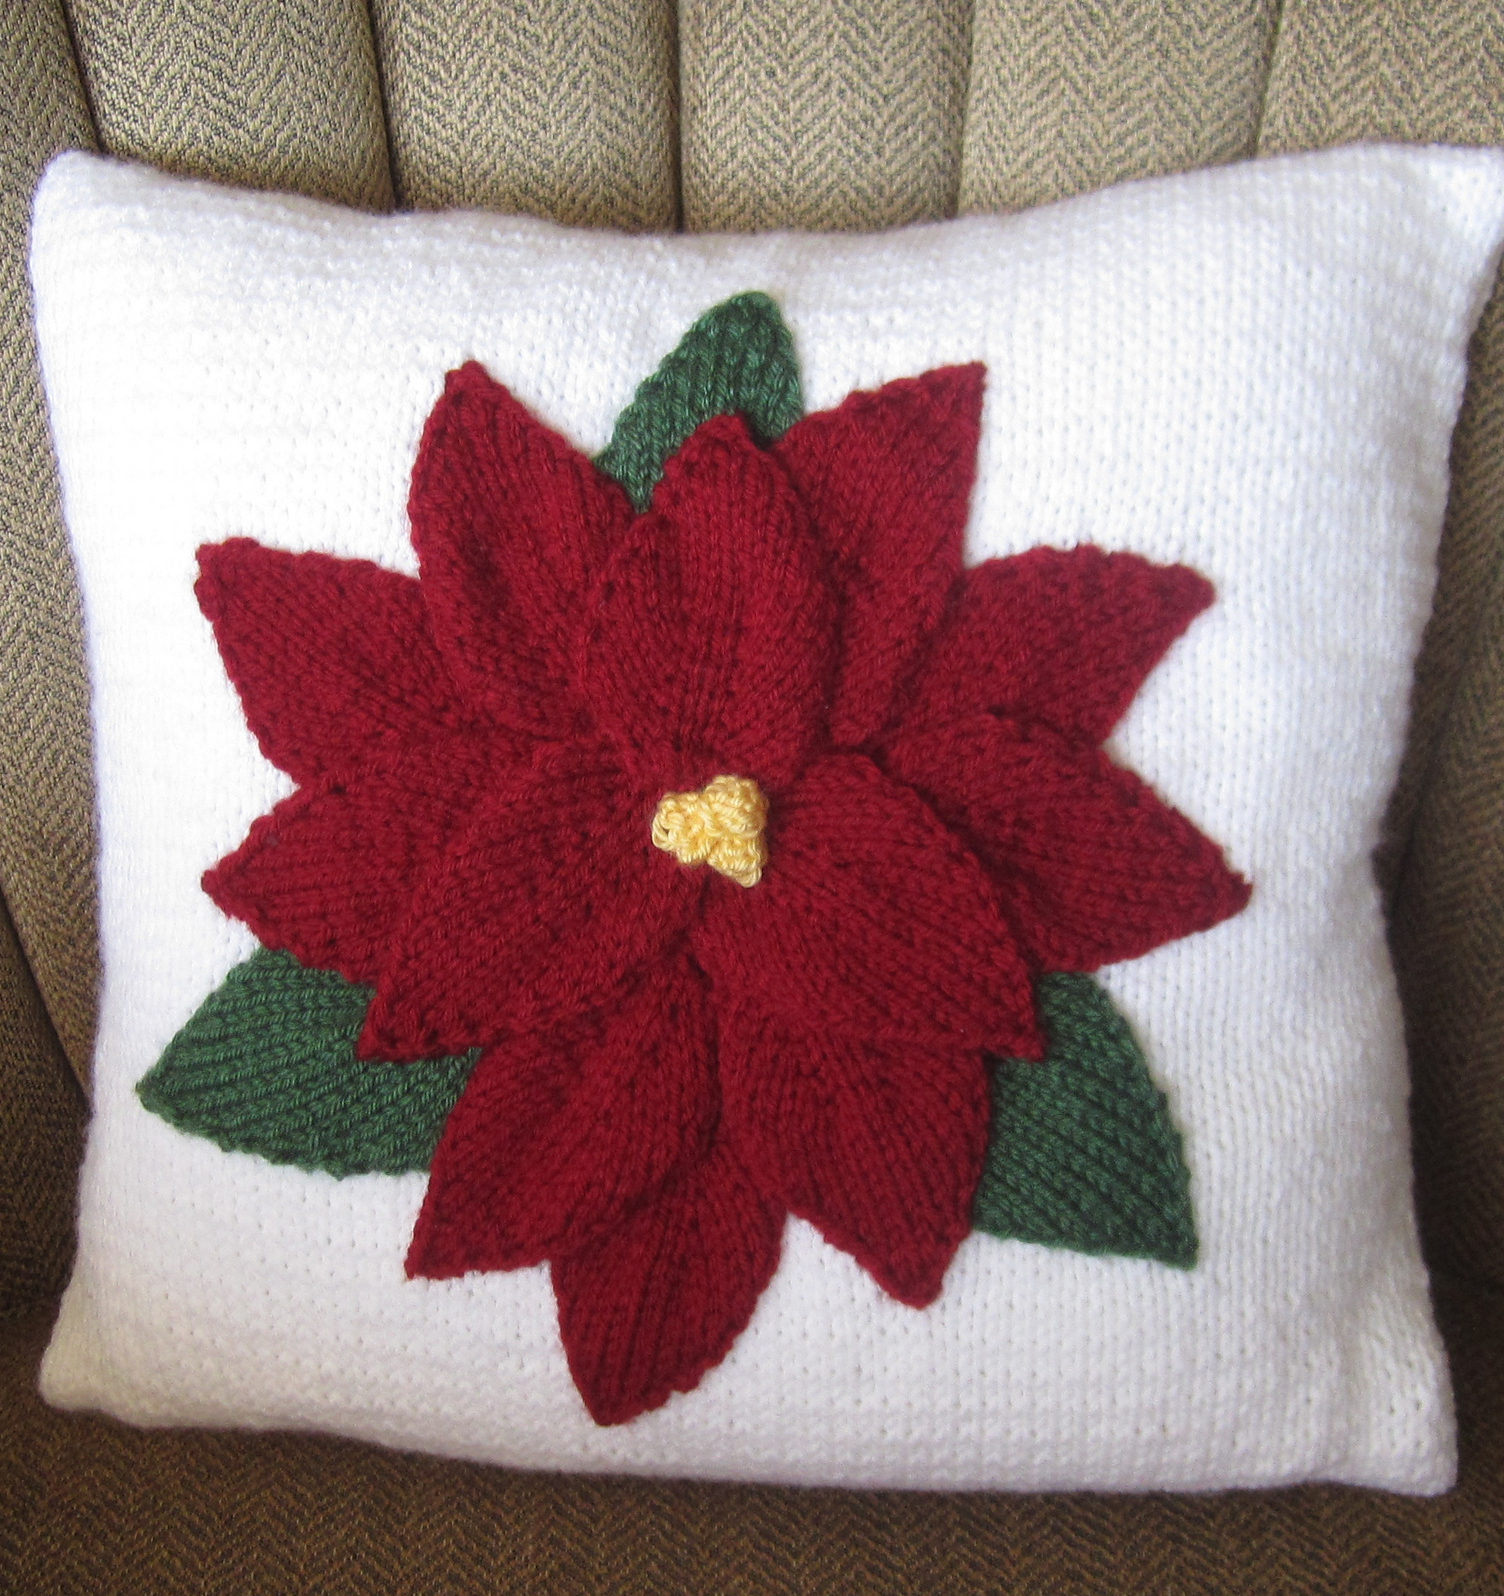 Knitting Pattern for Poinsettia Pillow